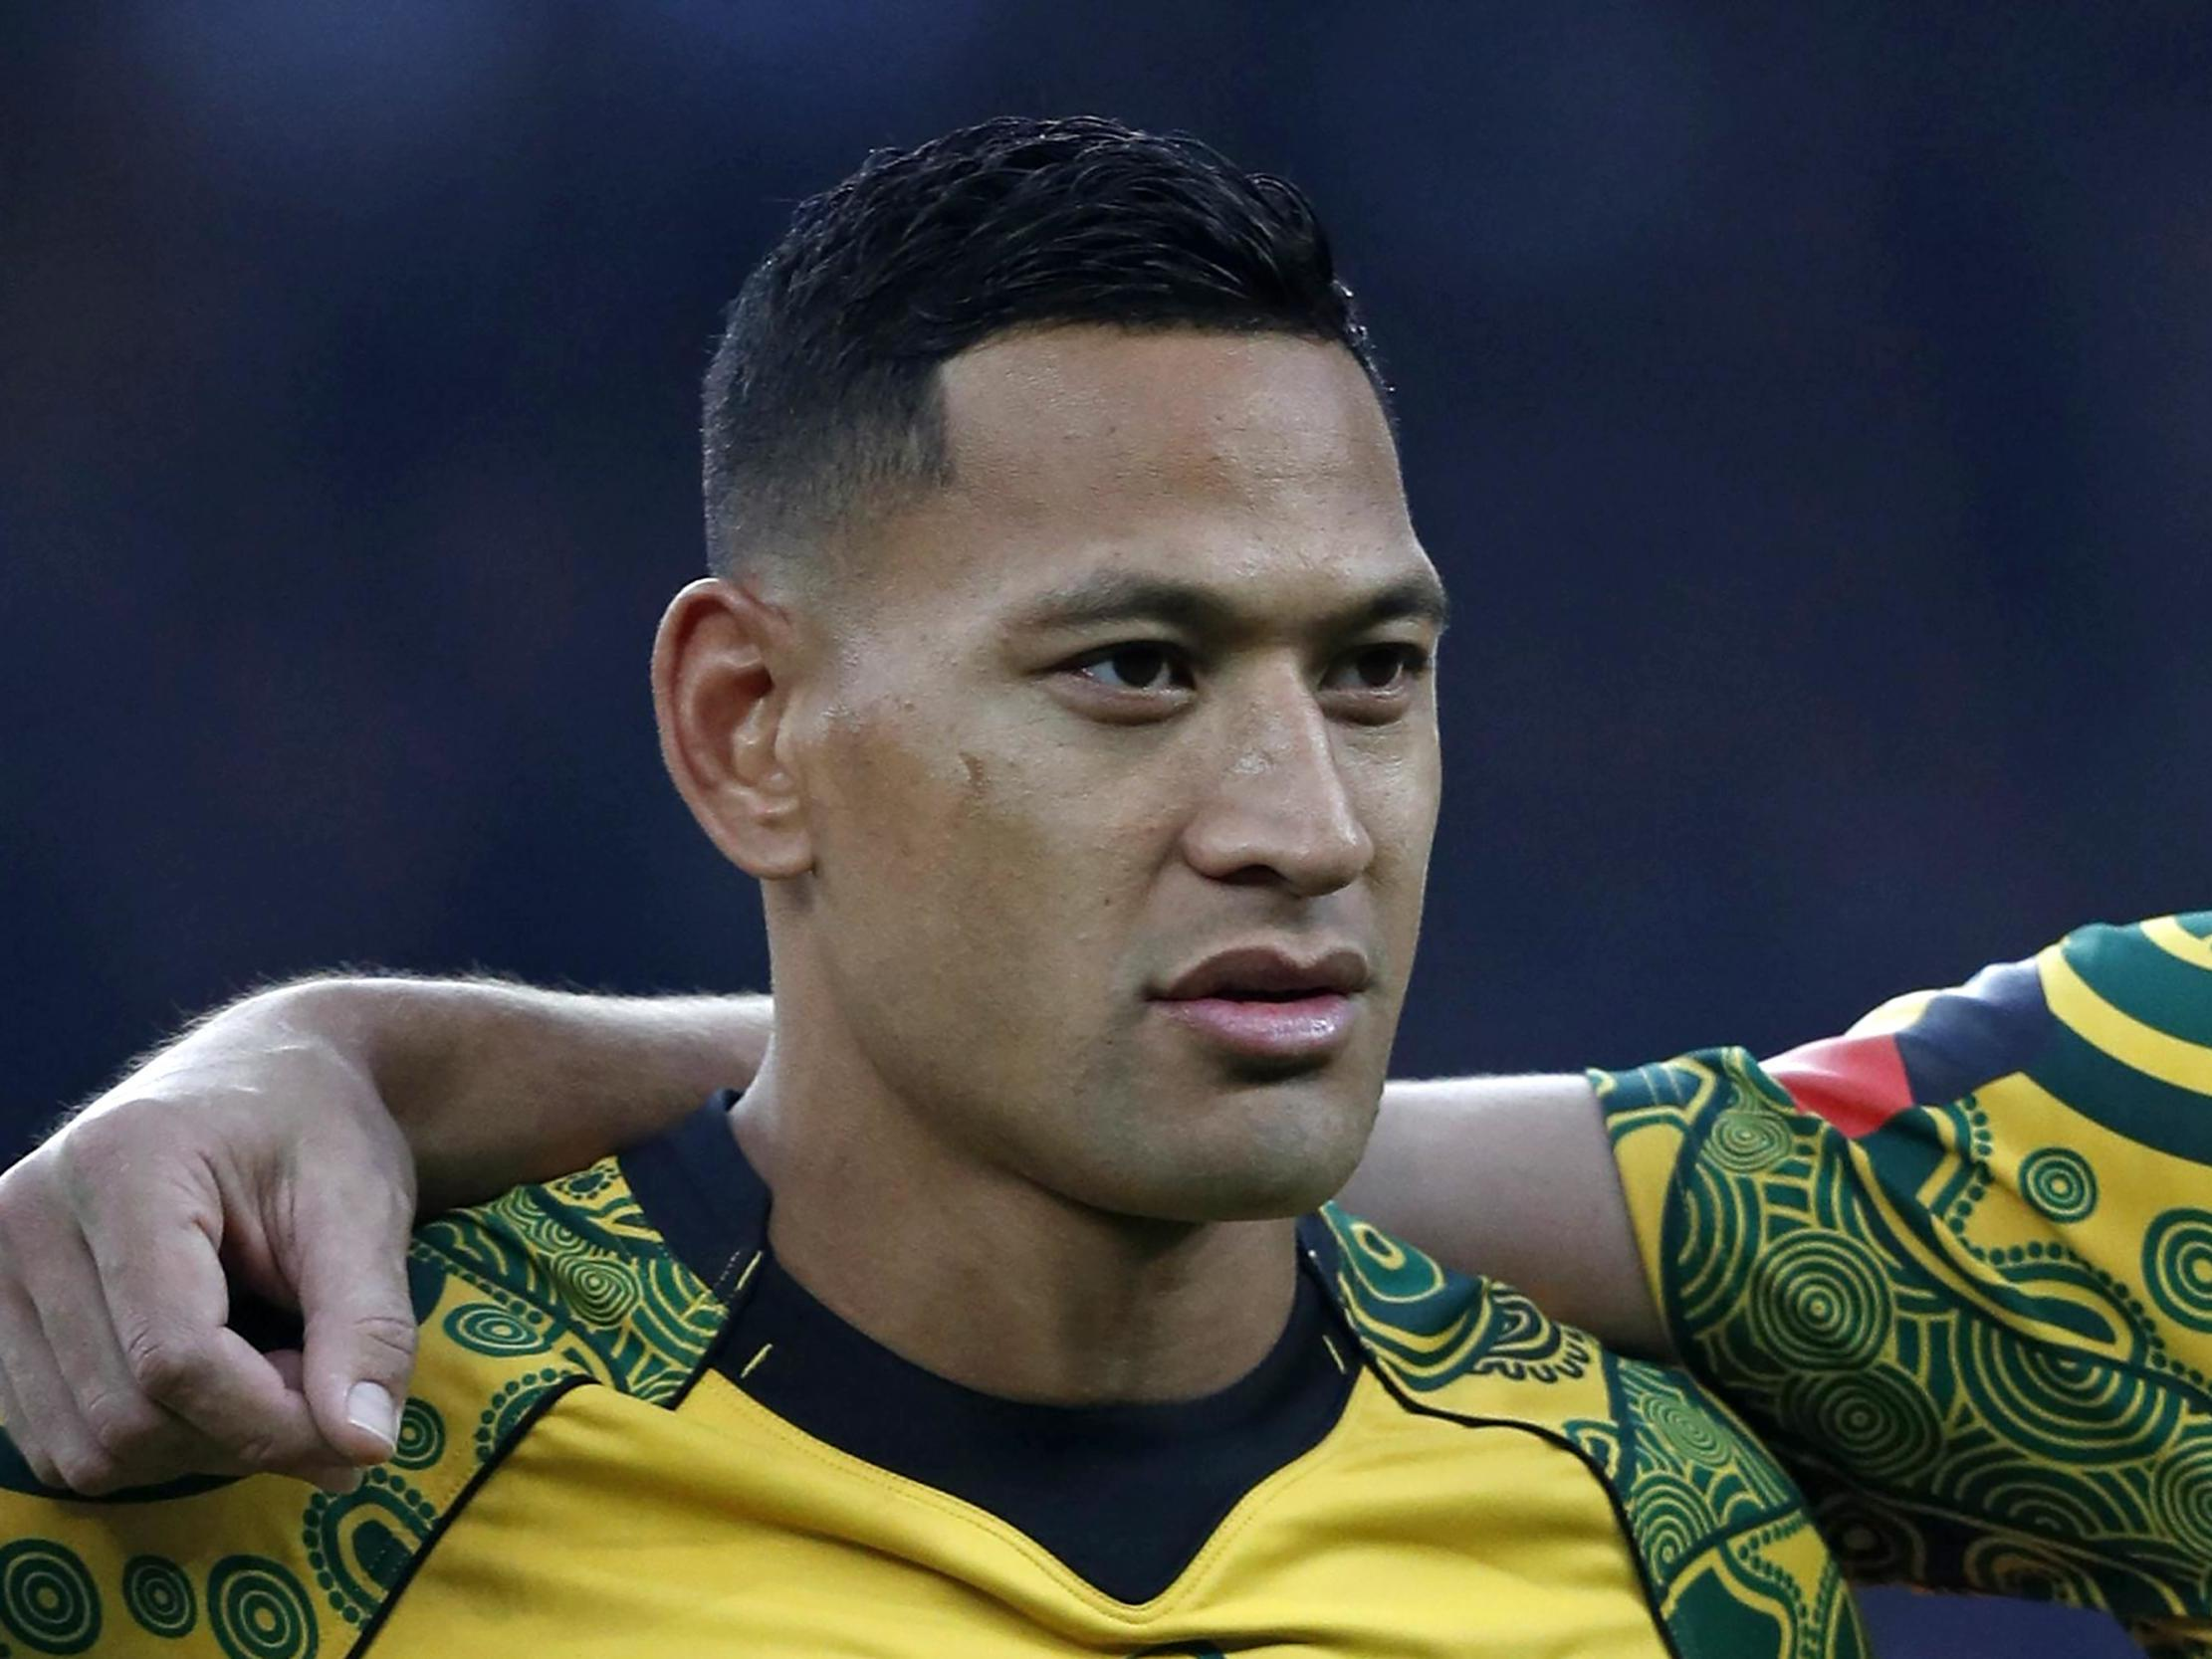 Israel Folau: Australian MP concerned over intent to dismiss Wallabies star despite not seeing anti-gay tirade